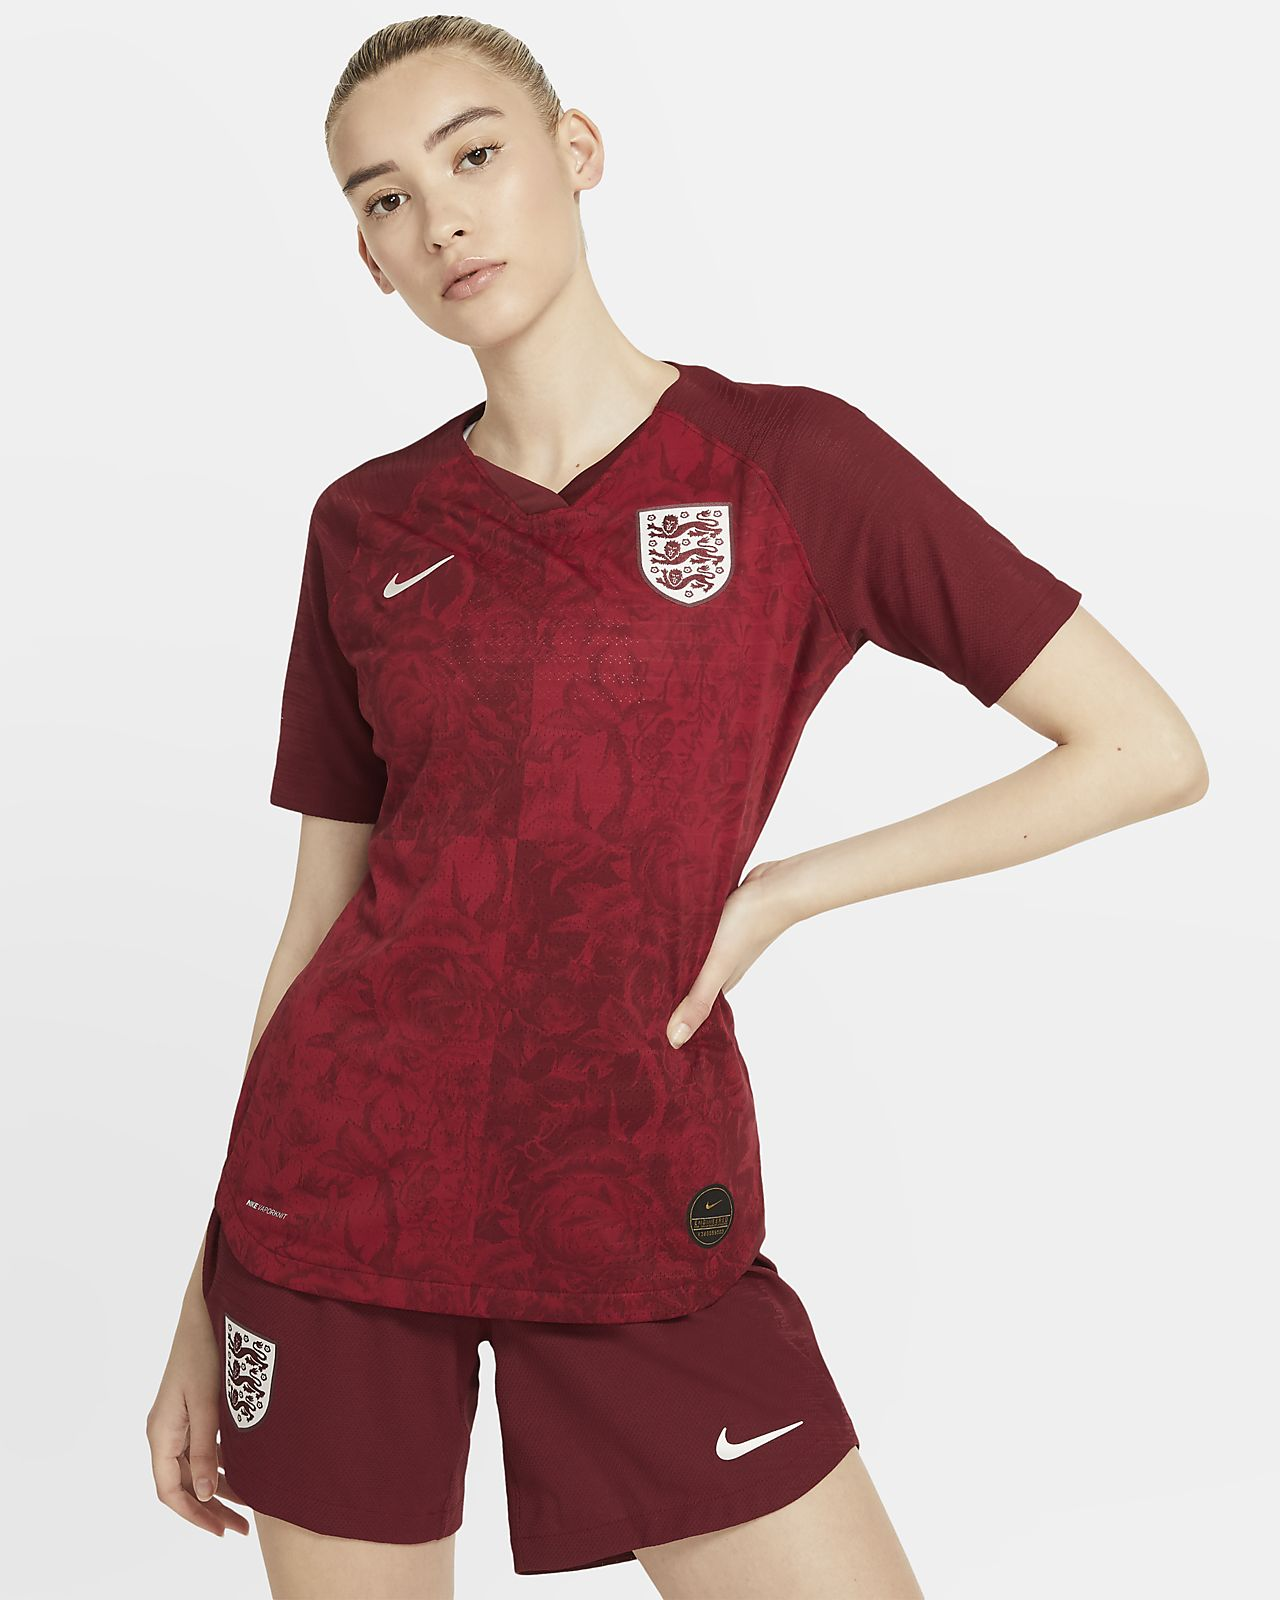 England 2019 Vapor Match Away Women's Football Shirt